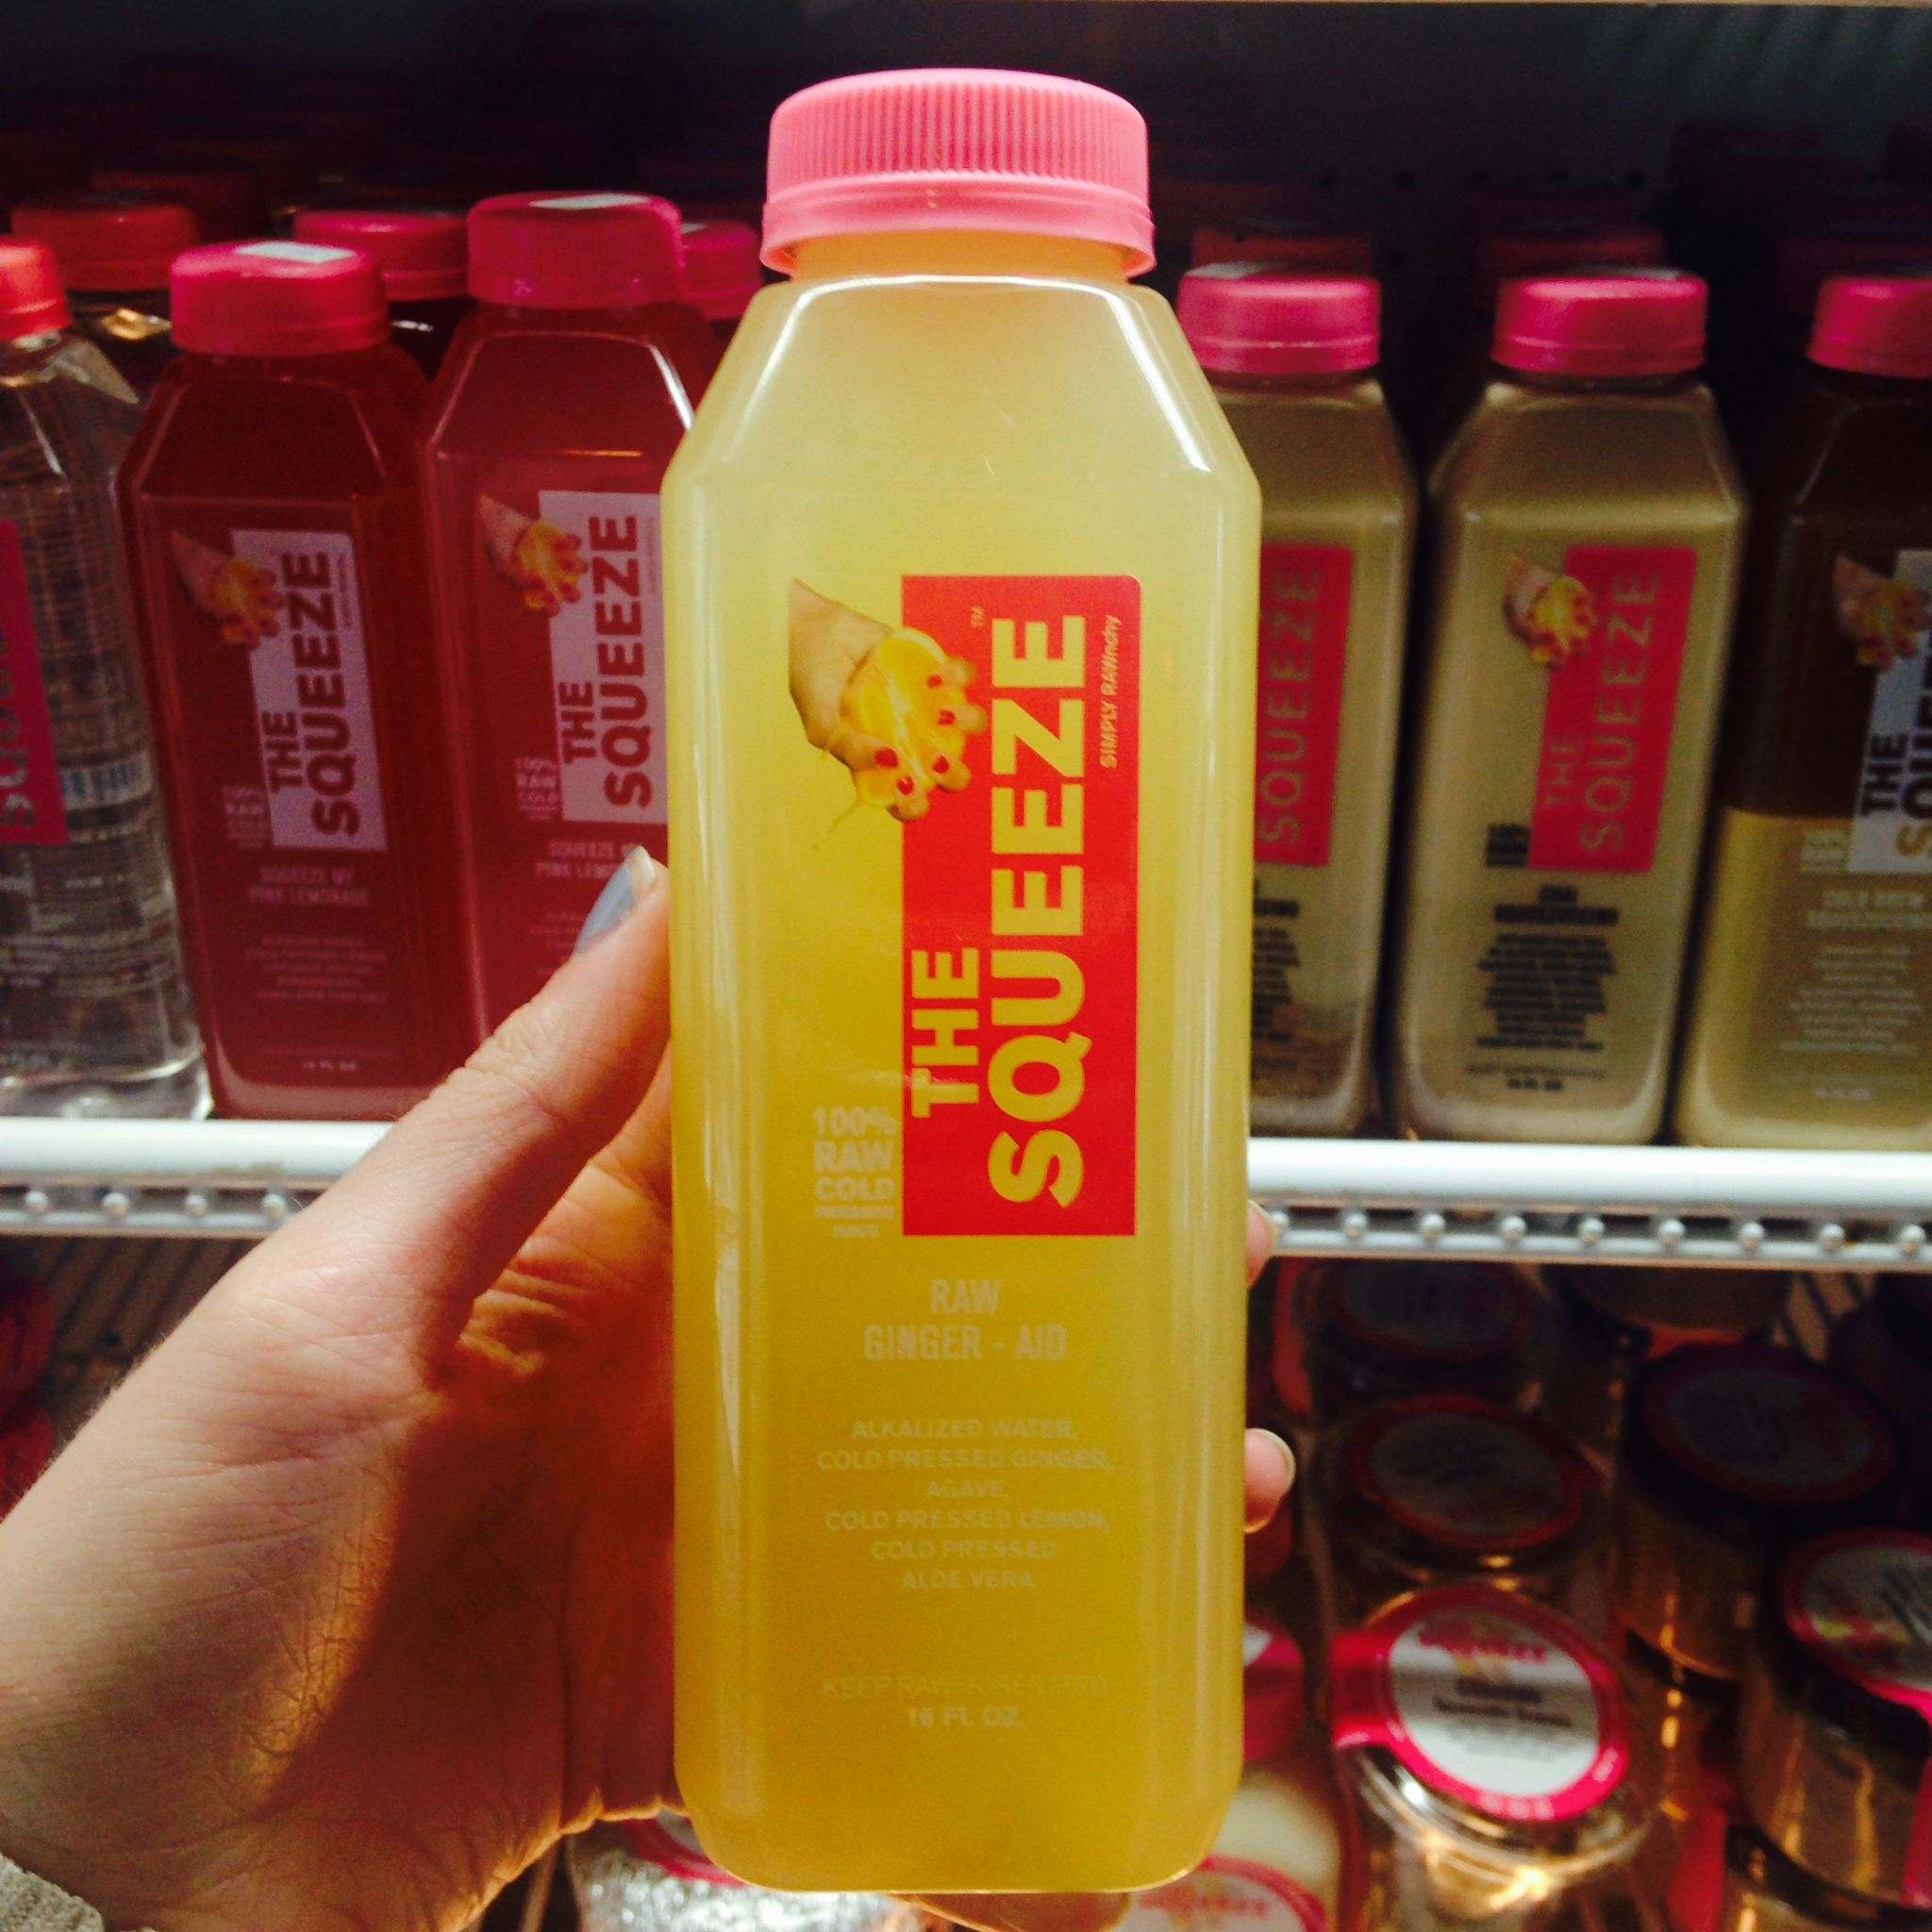 Raw Ginger-Aid - The Squeeze